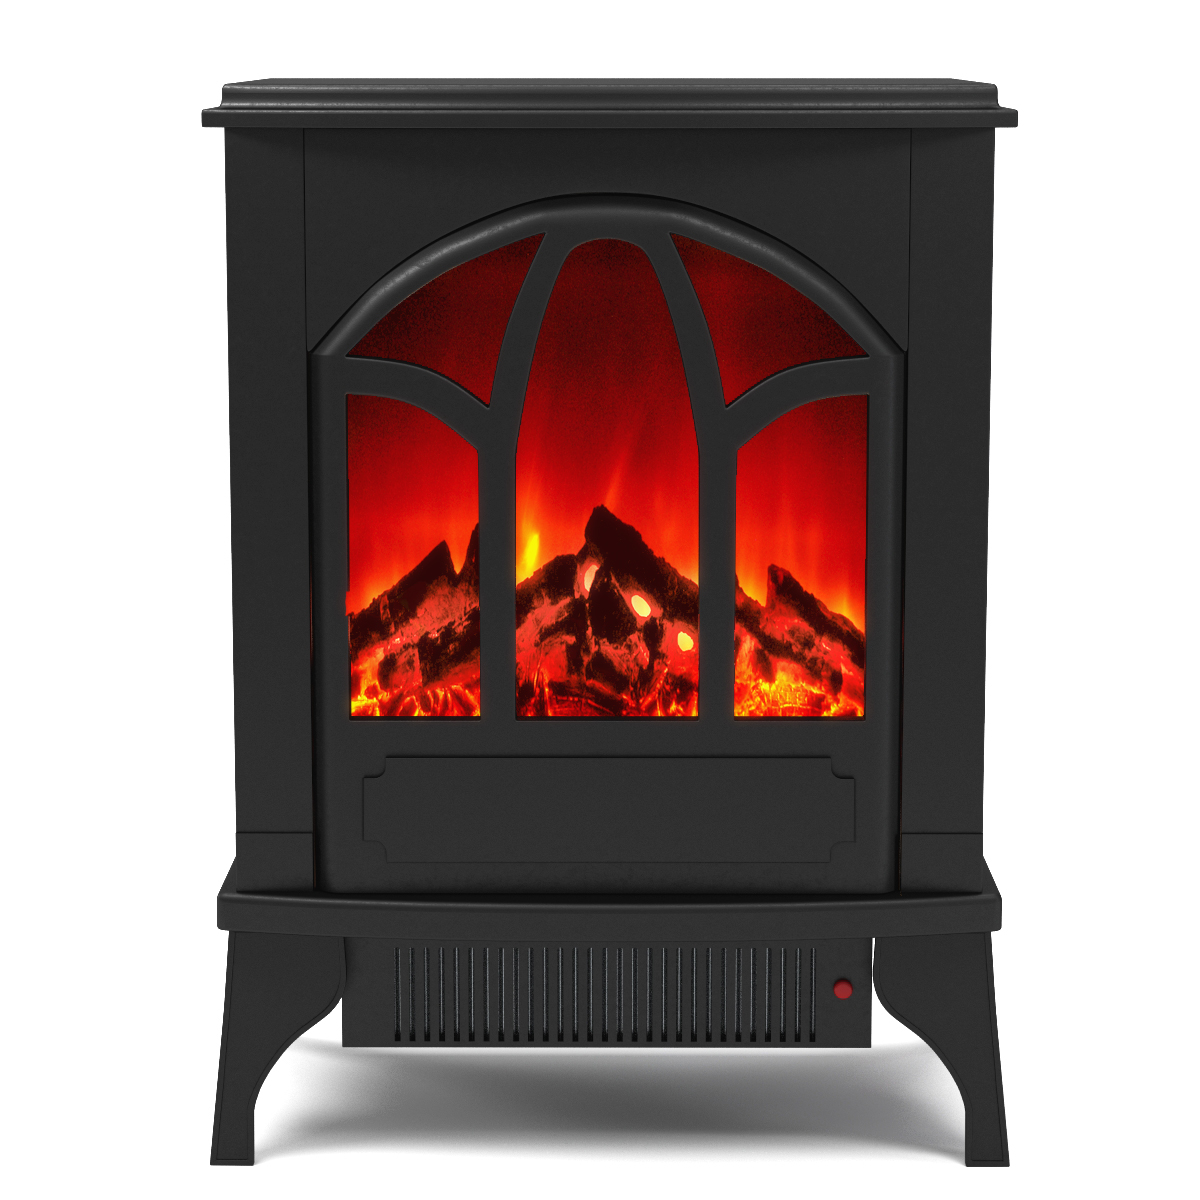 home fireplace portable quartz ip living infrared stove com warm walmart heater